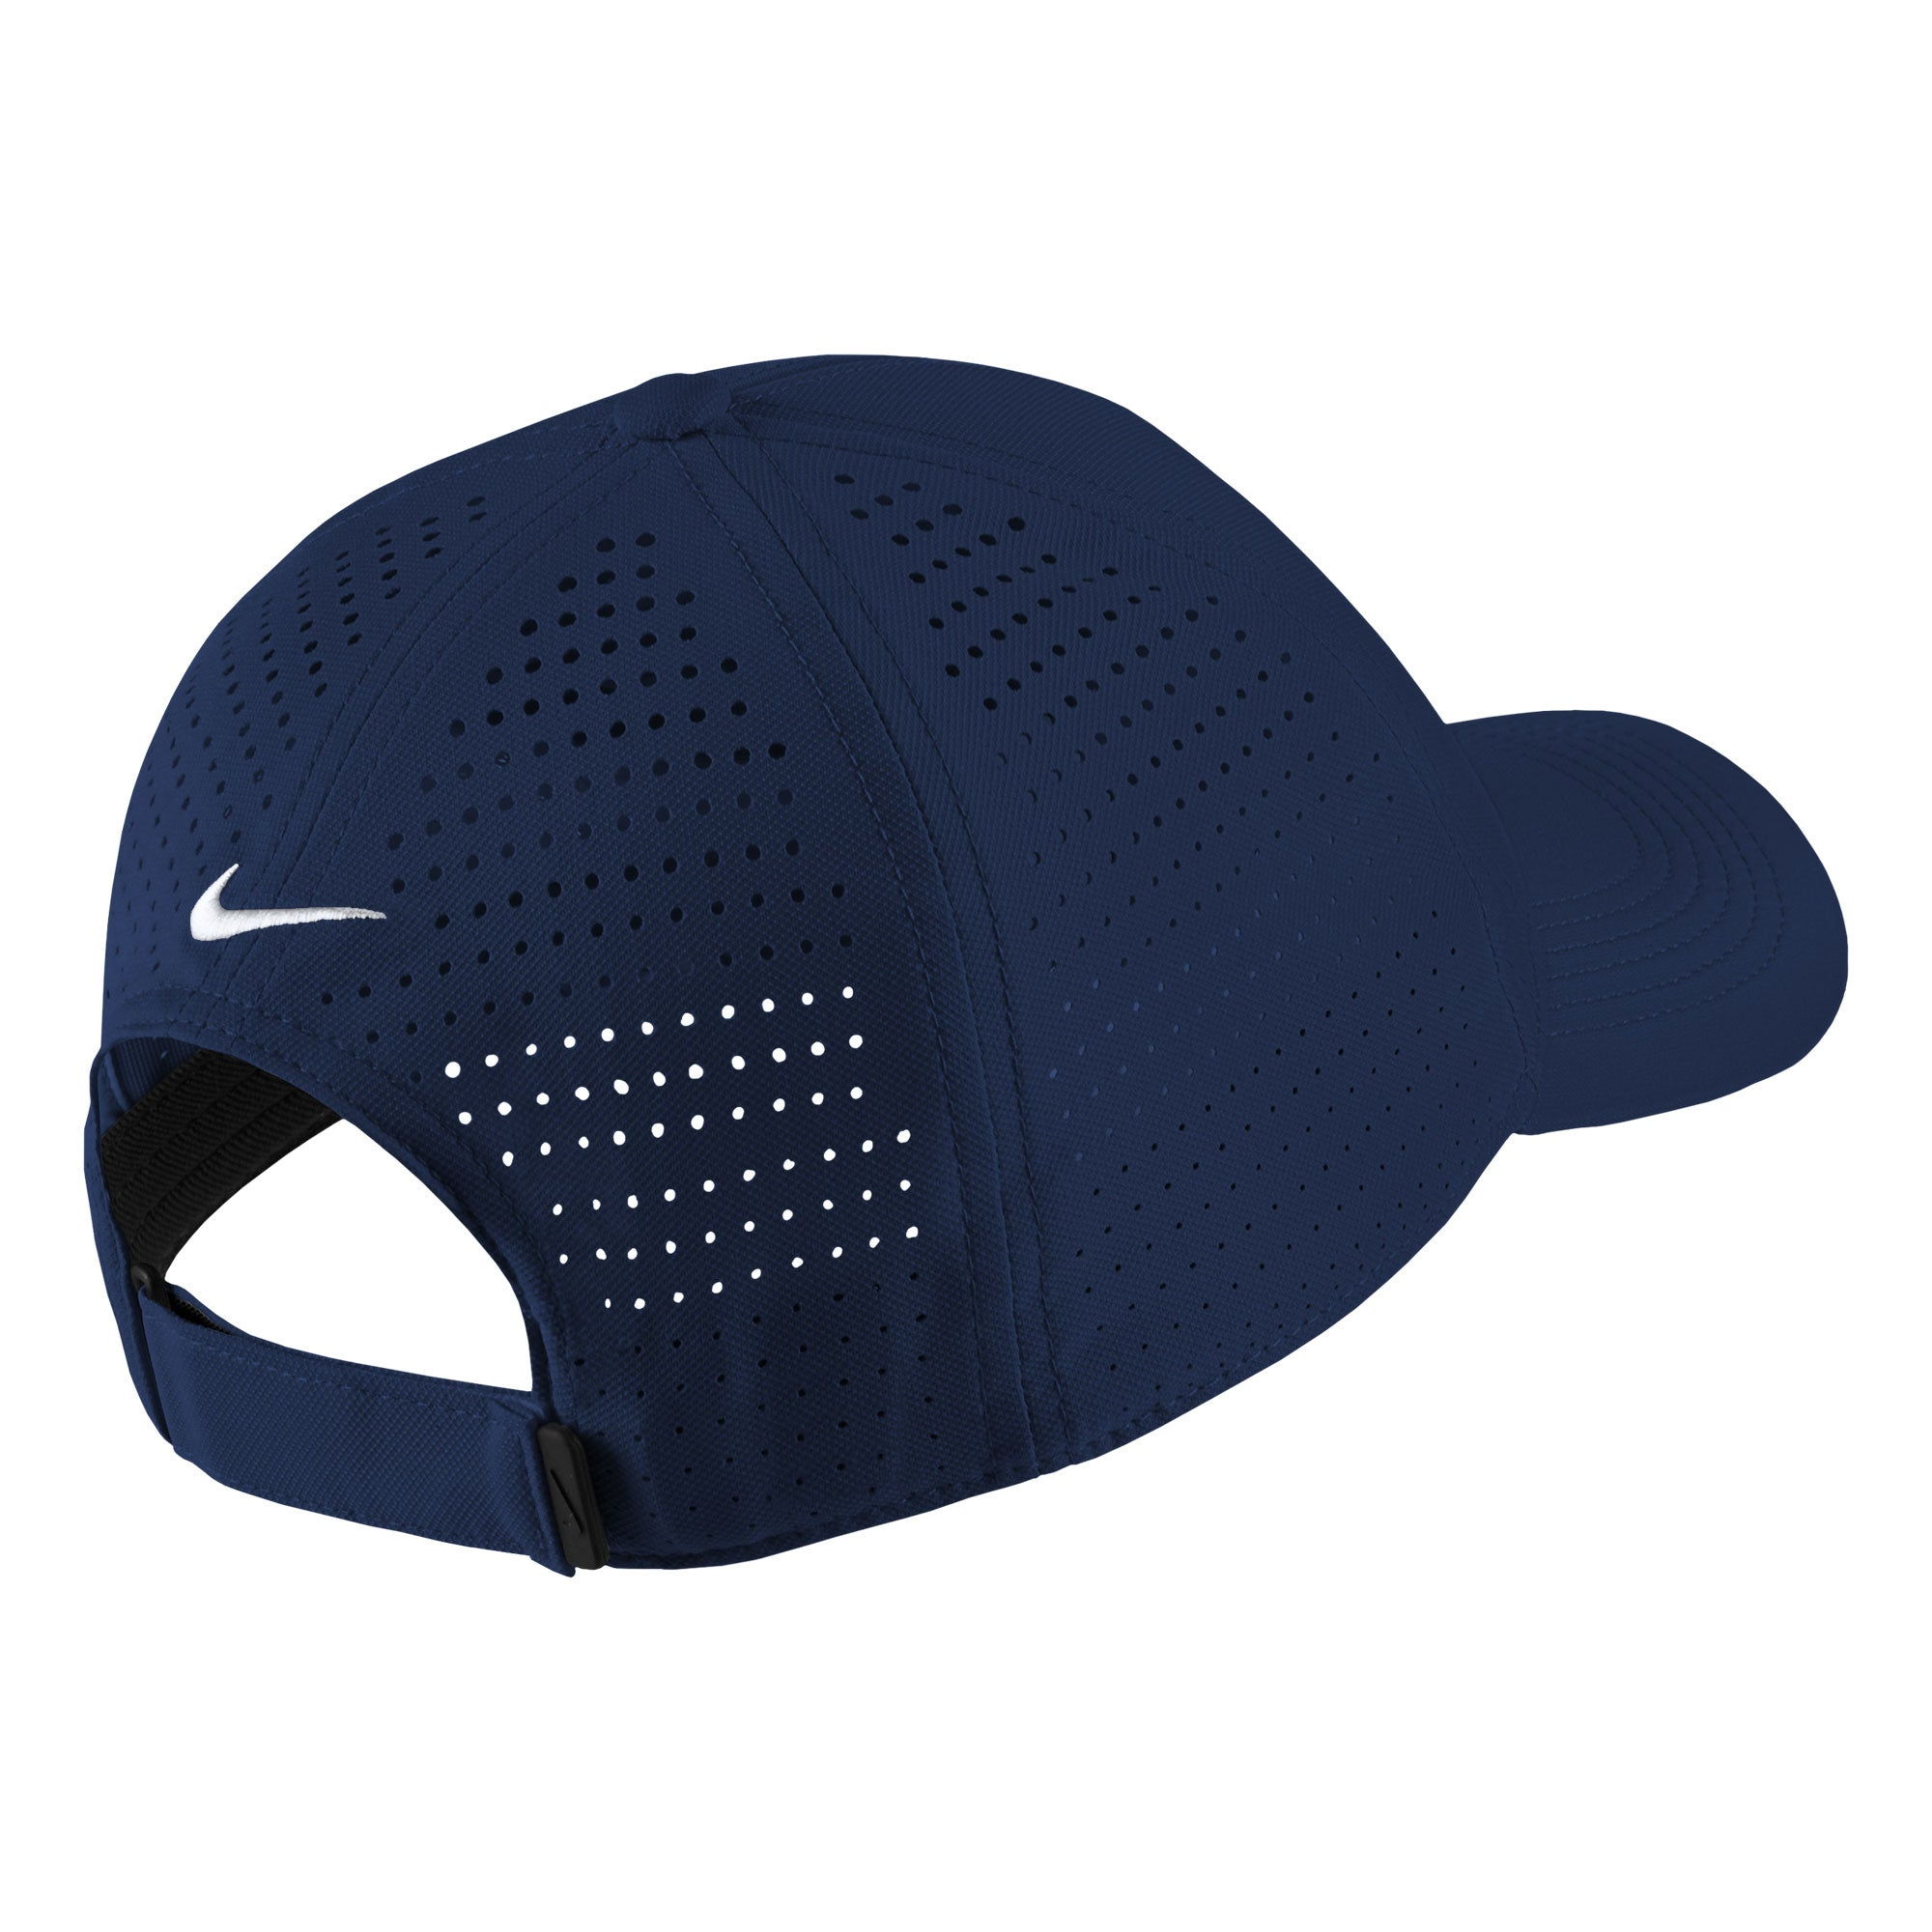 0dd8d4eebed Nike Golf Legacy Perforated Hat – Jesuit Dallas Ranger Connection